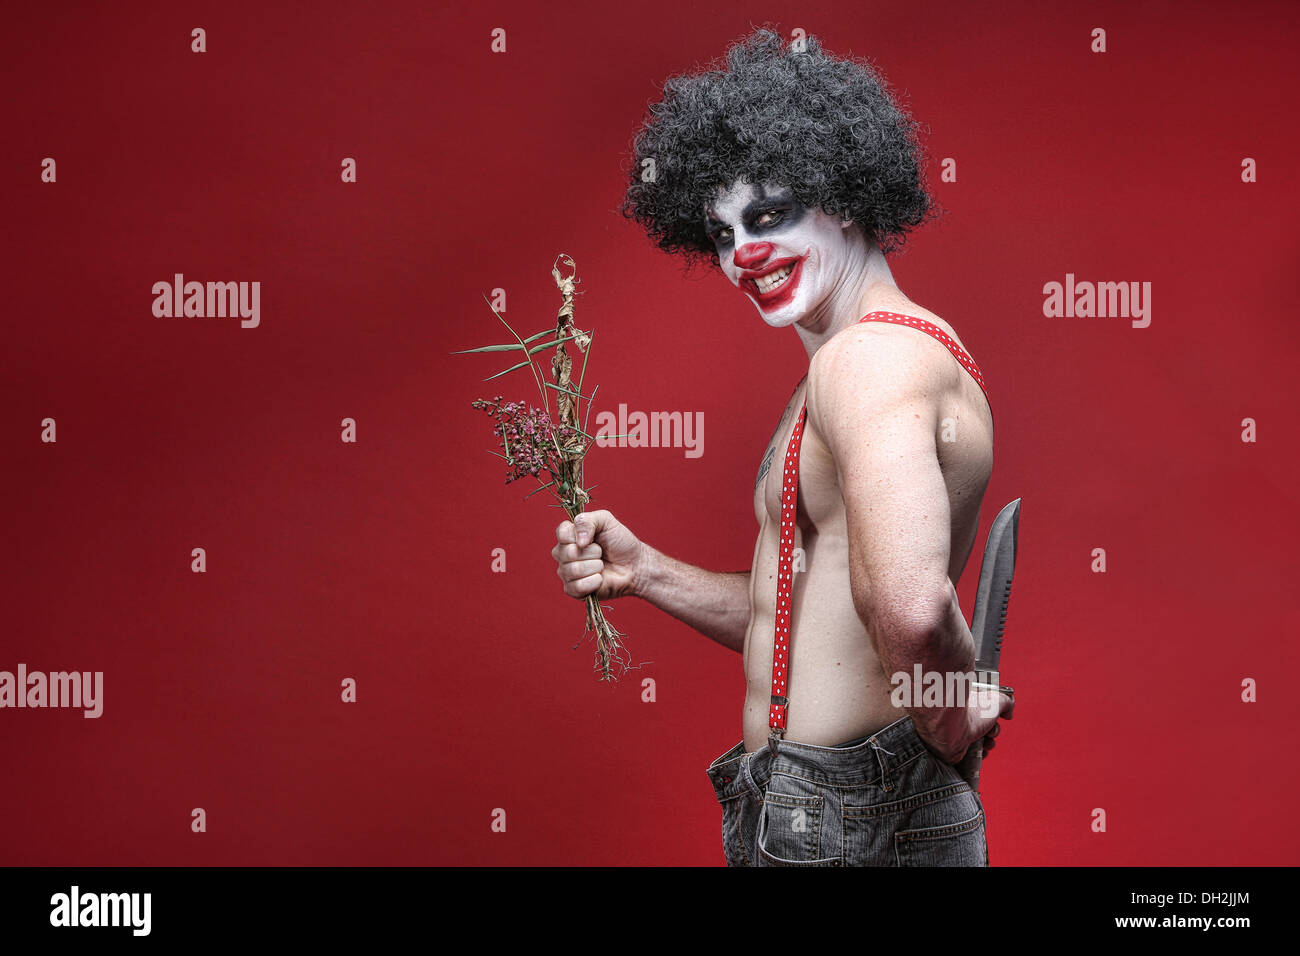 Evil Spooky Clown Portrait on Red Background - Stock Image